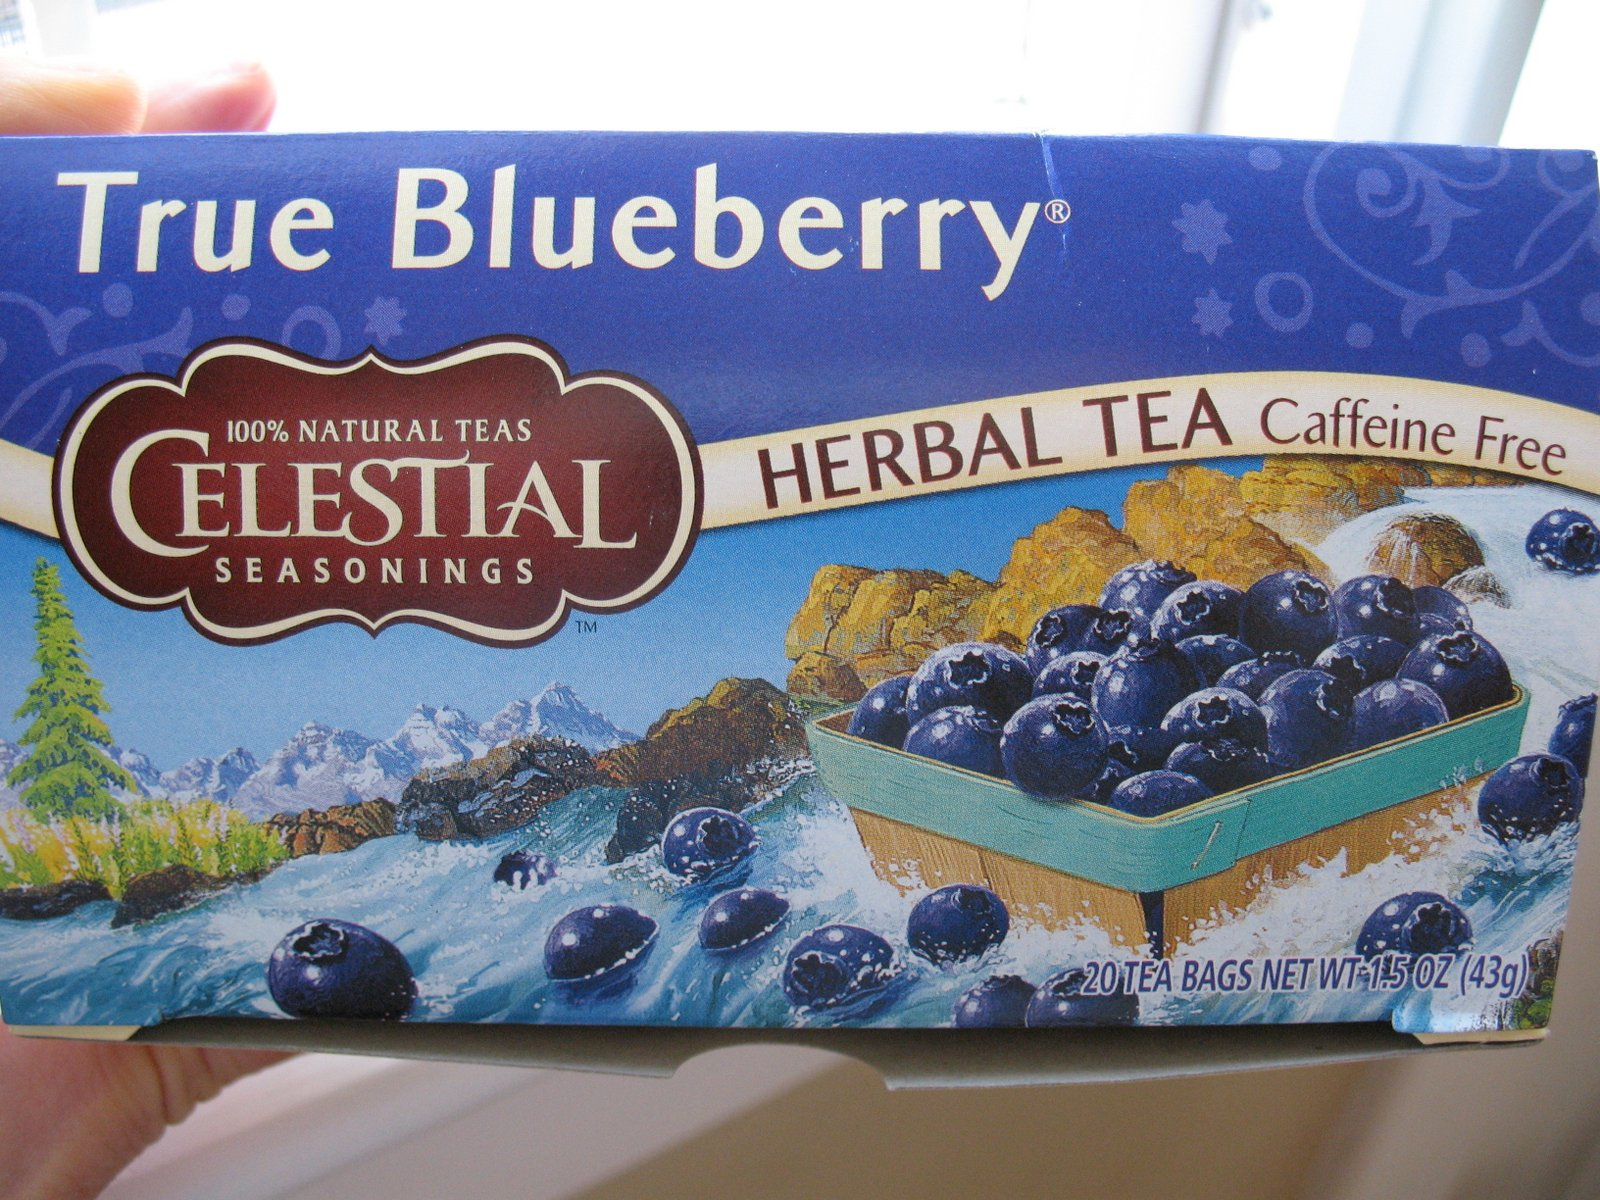 I've tried them all, and I always come back to Celestial Seasonings Blueberry